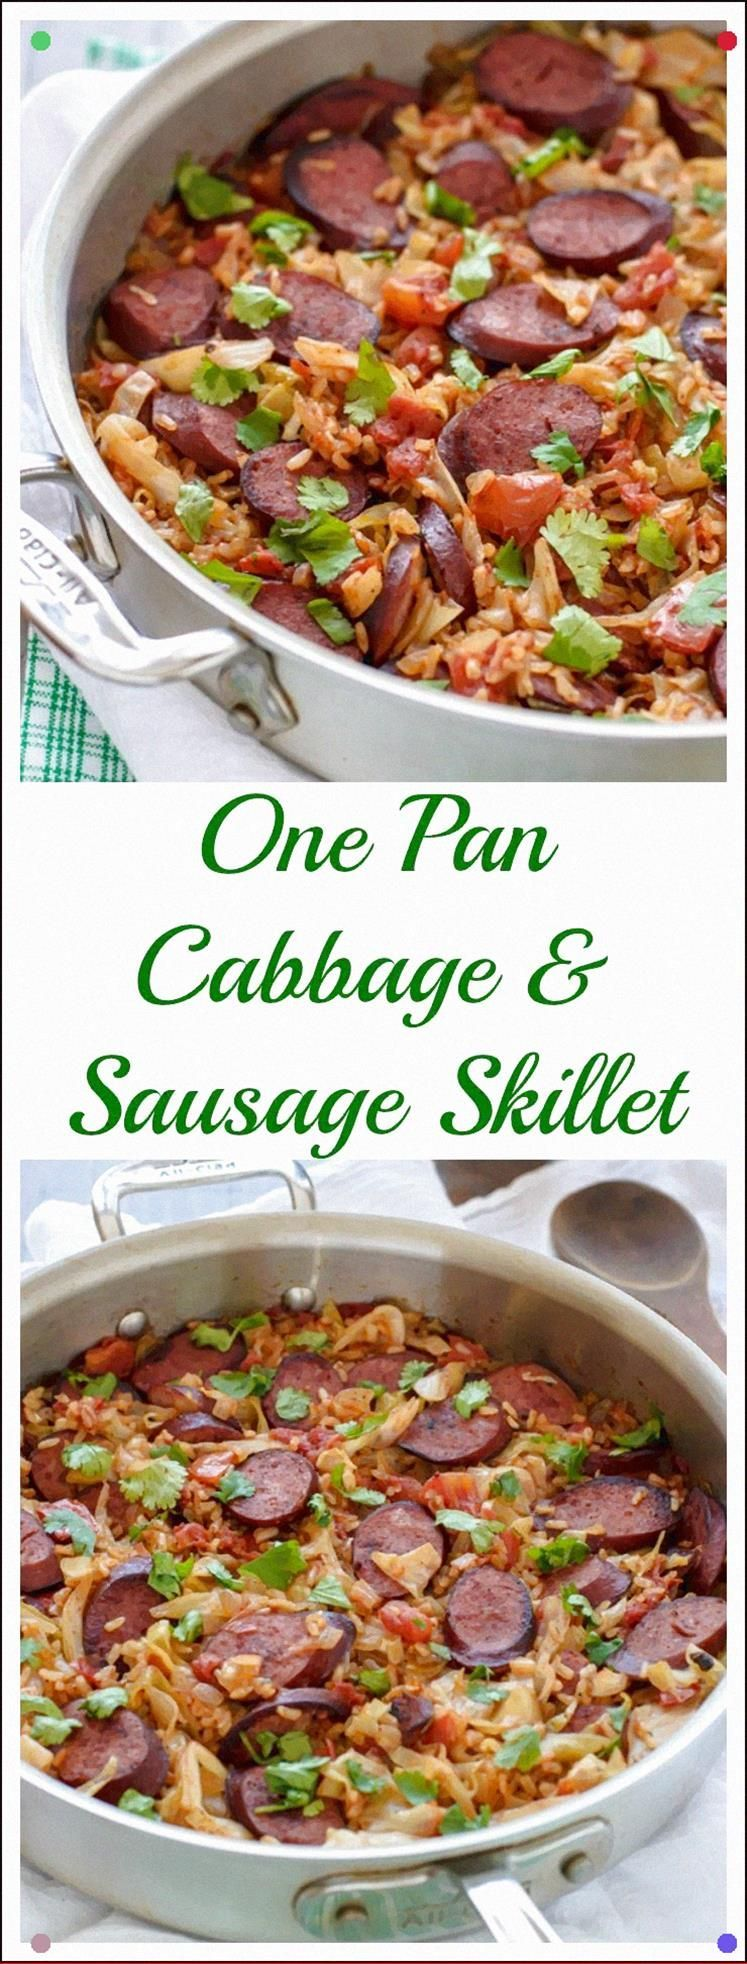 One Pan Cabbage And Sausage Skillet Simple Healthy Only One Dish